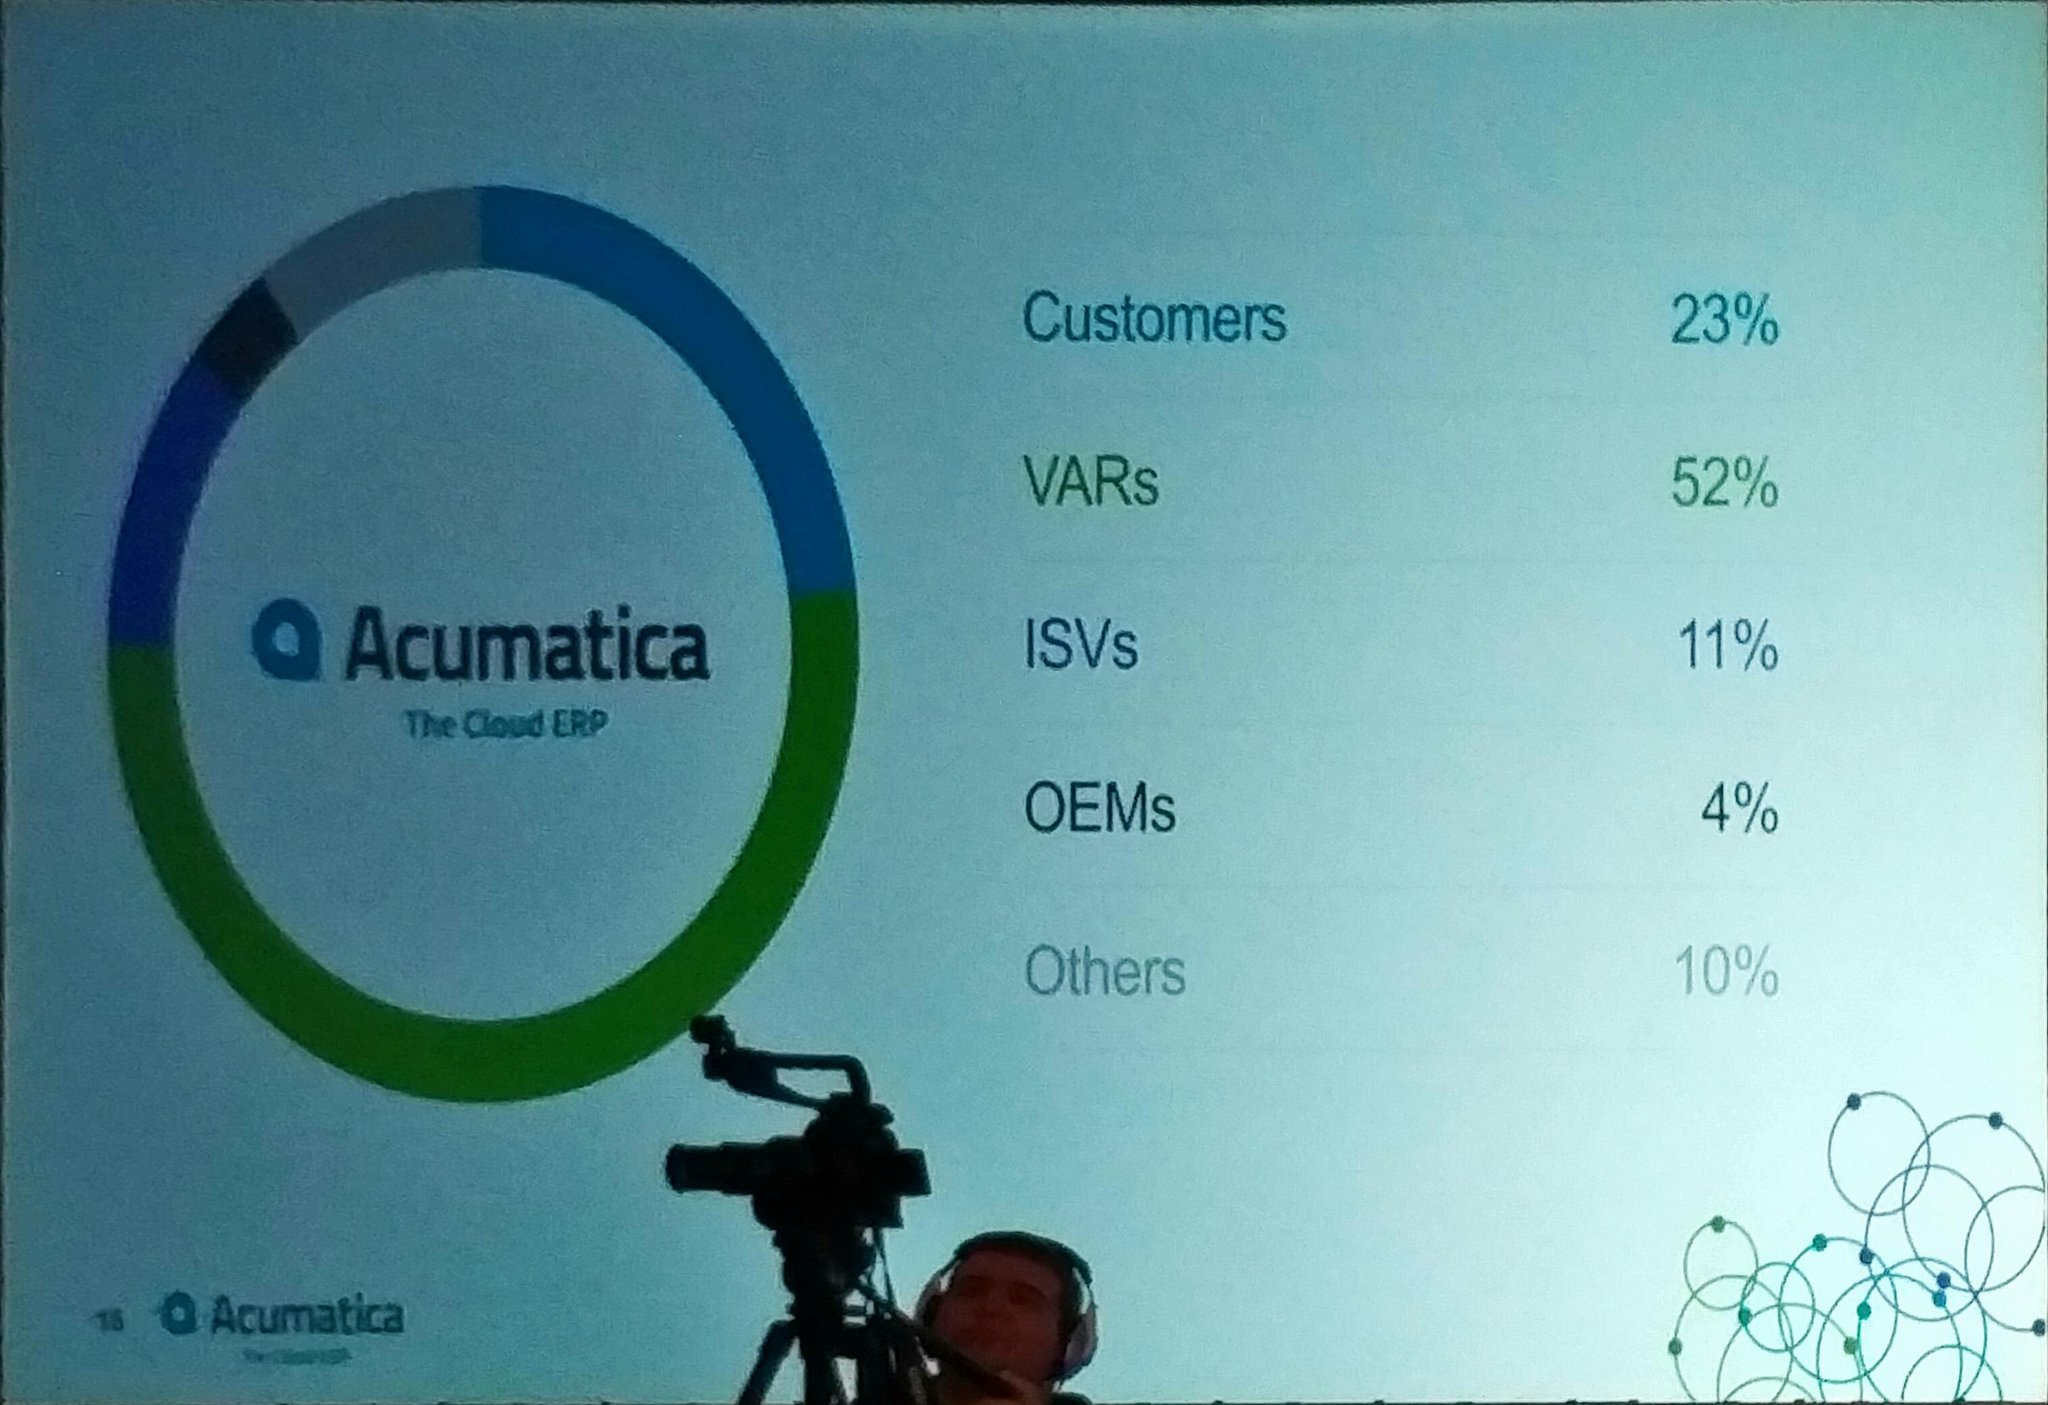 .@jon_roskill - Only the 2nd year @Acumatica has customers attend #AcumaticaSummit - already one quarter of attendees. https://t.co/ujVq6Sr8qJ